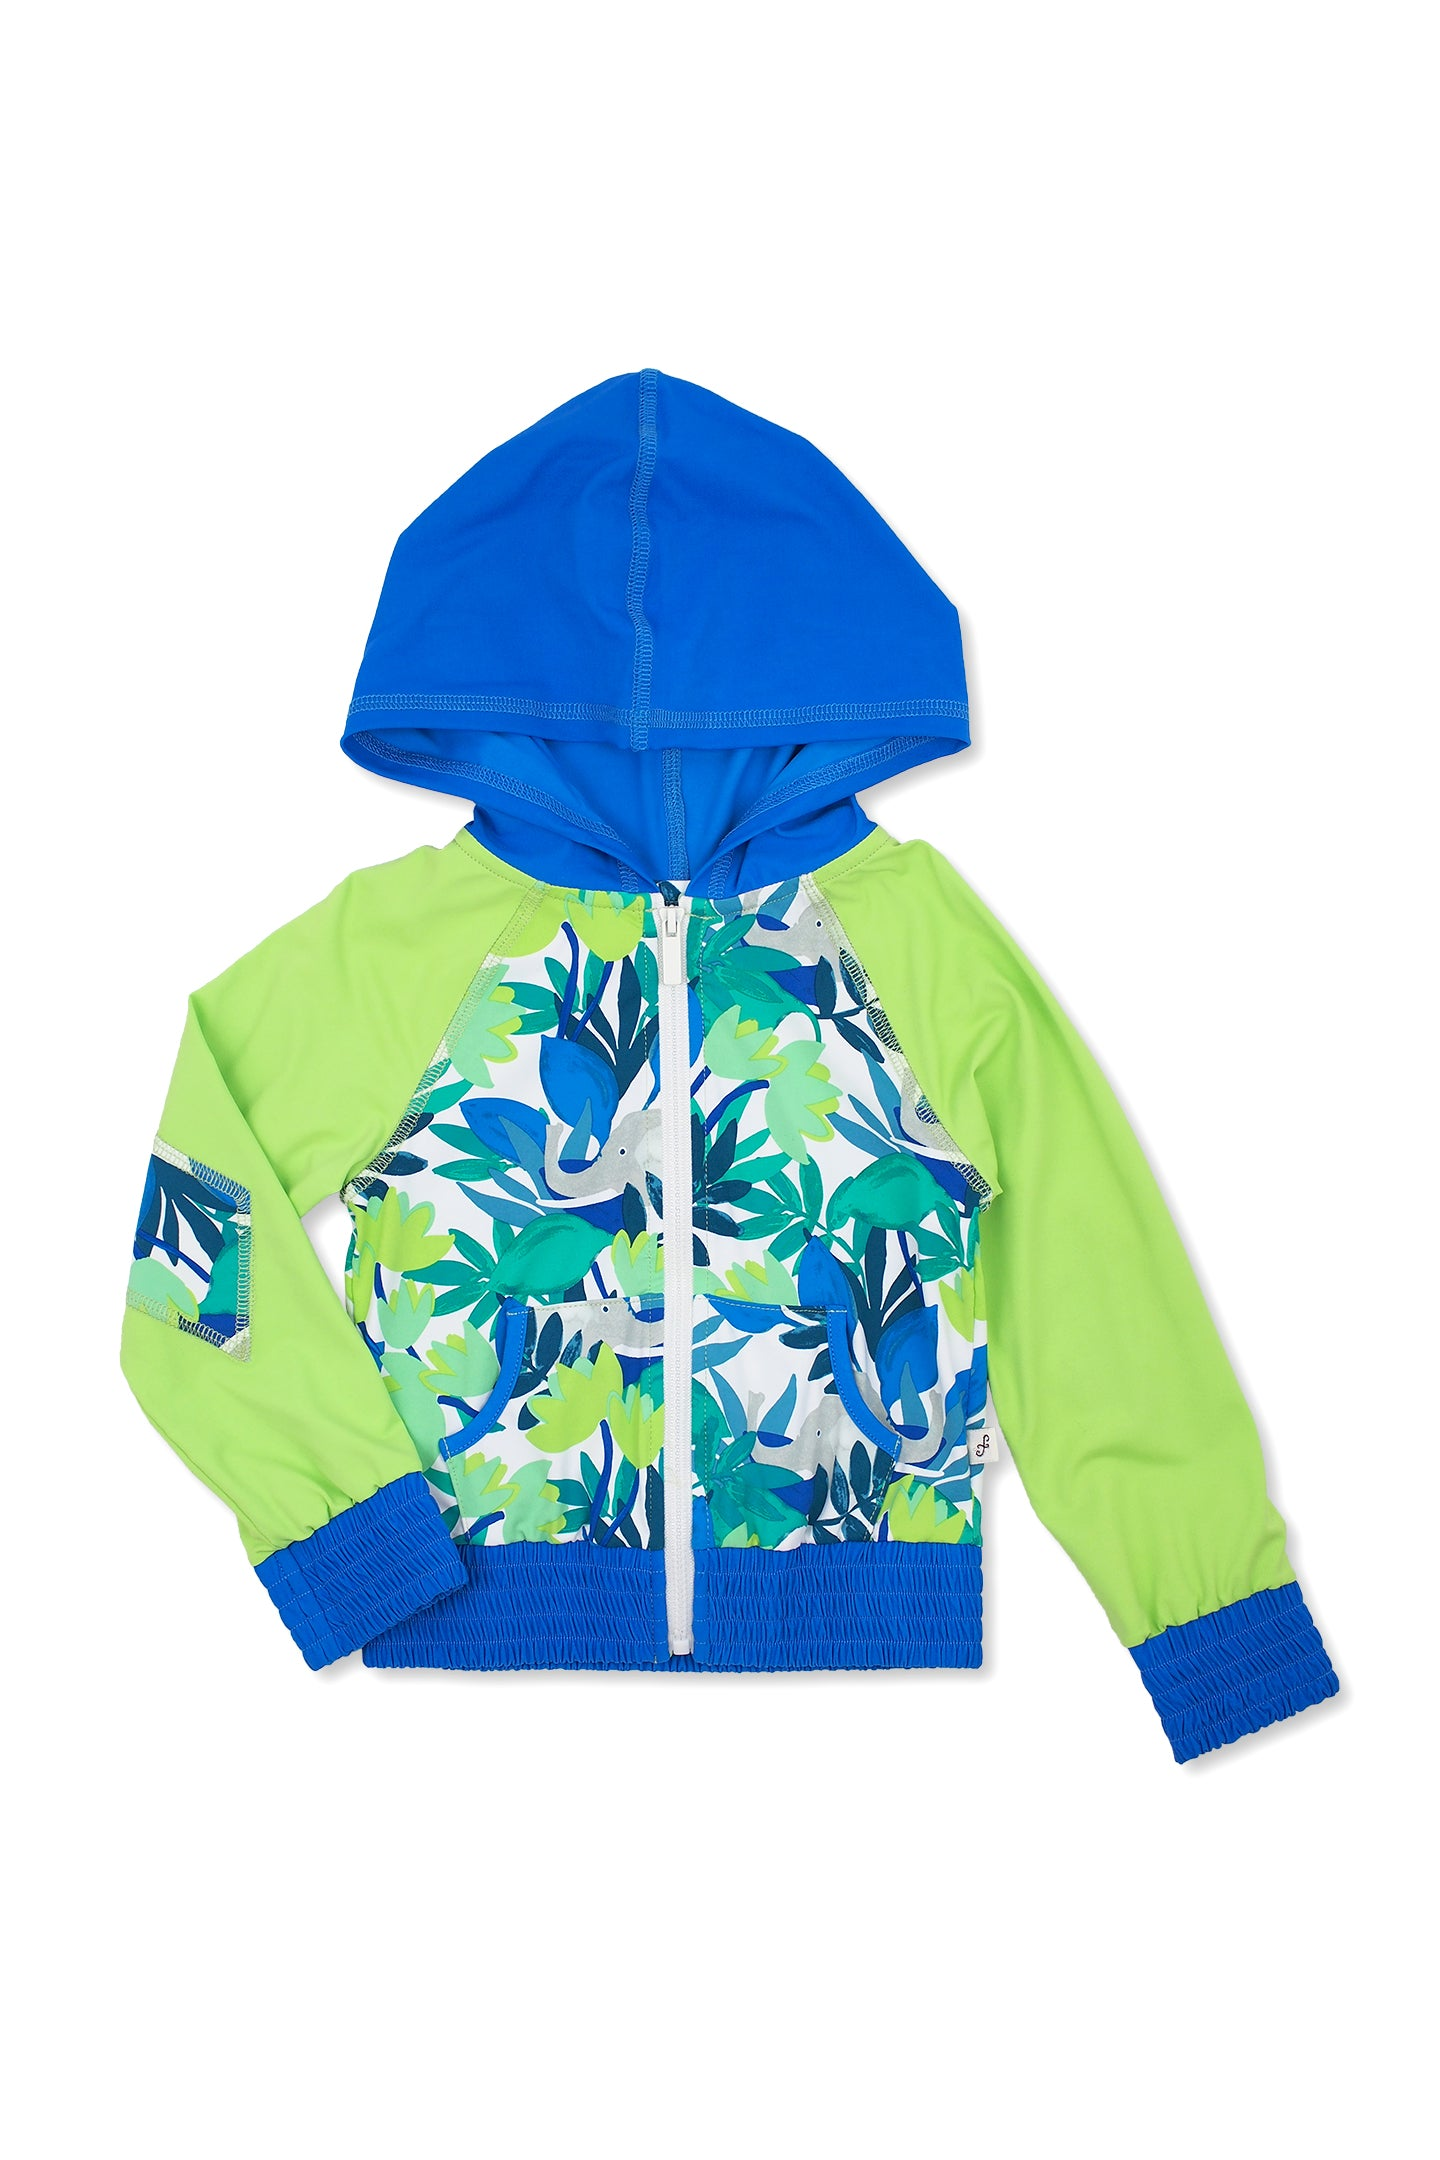 Forest Elephants Hooded Zip-up Rash Guard, lime